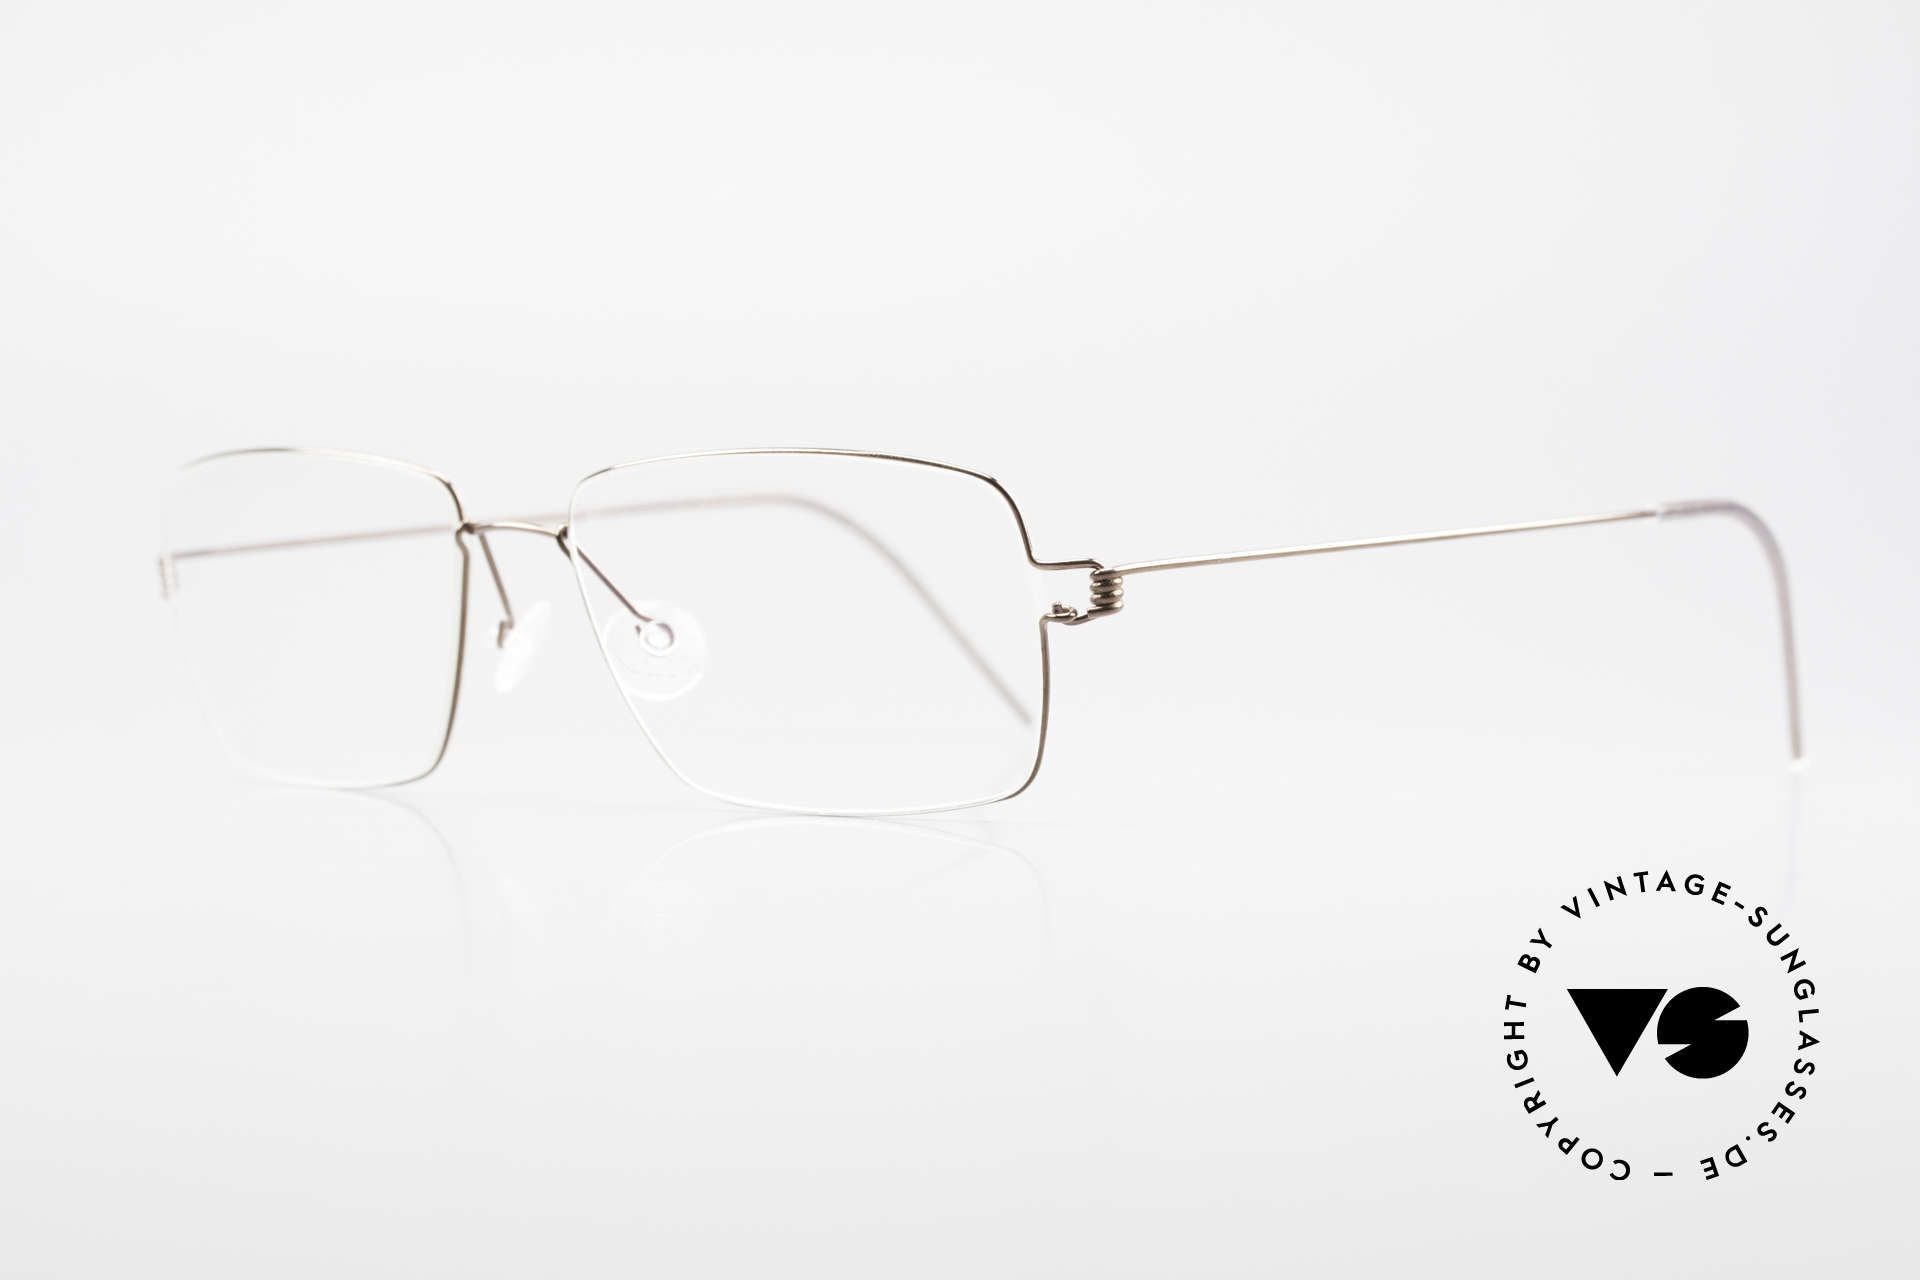 Lindberg Nikolaj Air Titan Rim High-End Titanium Frame Men, simply timeless, stylish & innovative: grade 'vintage', Made for Men